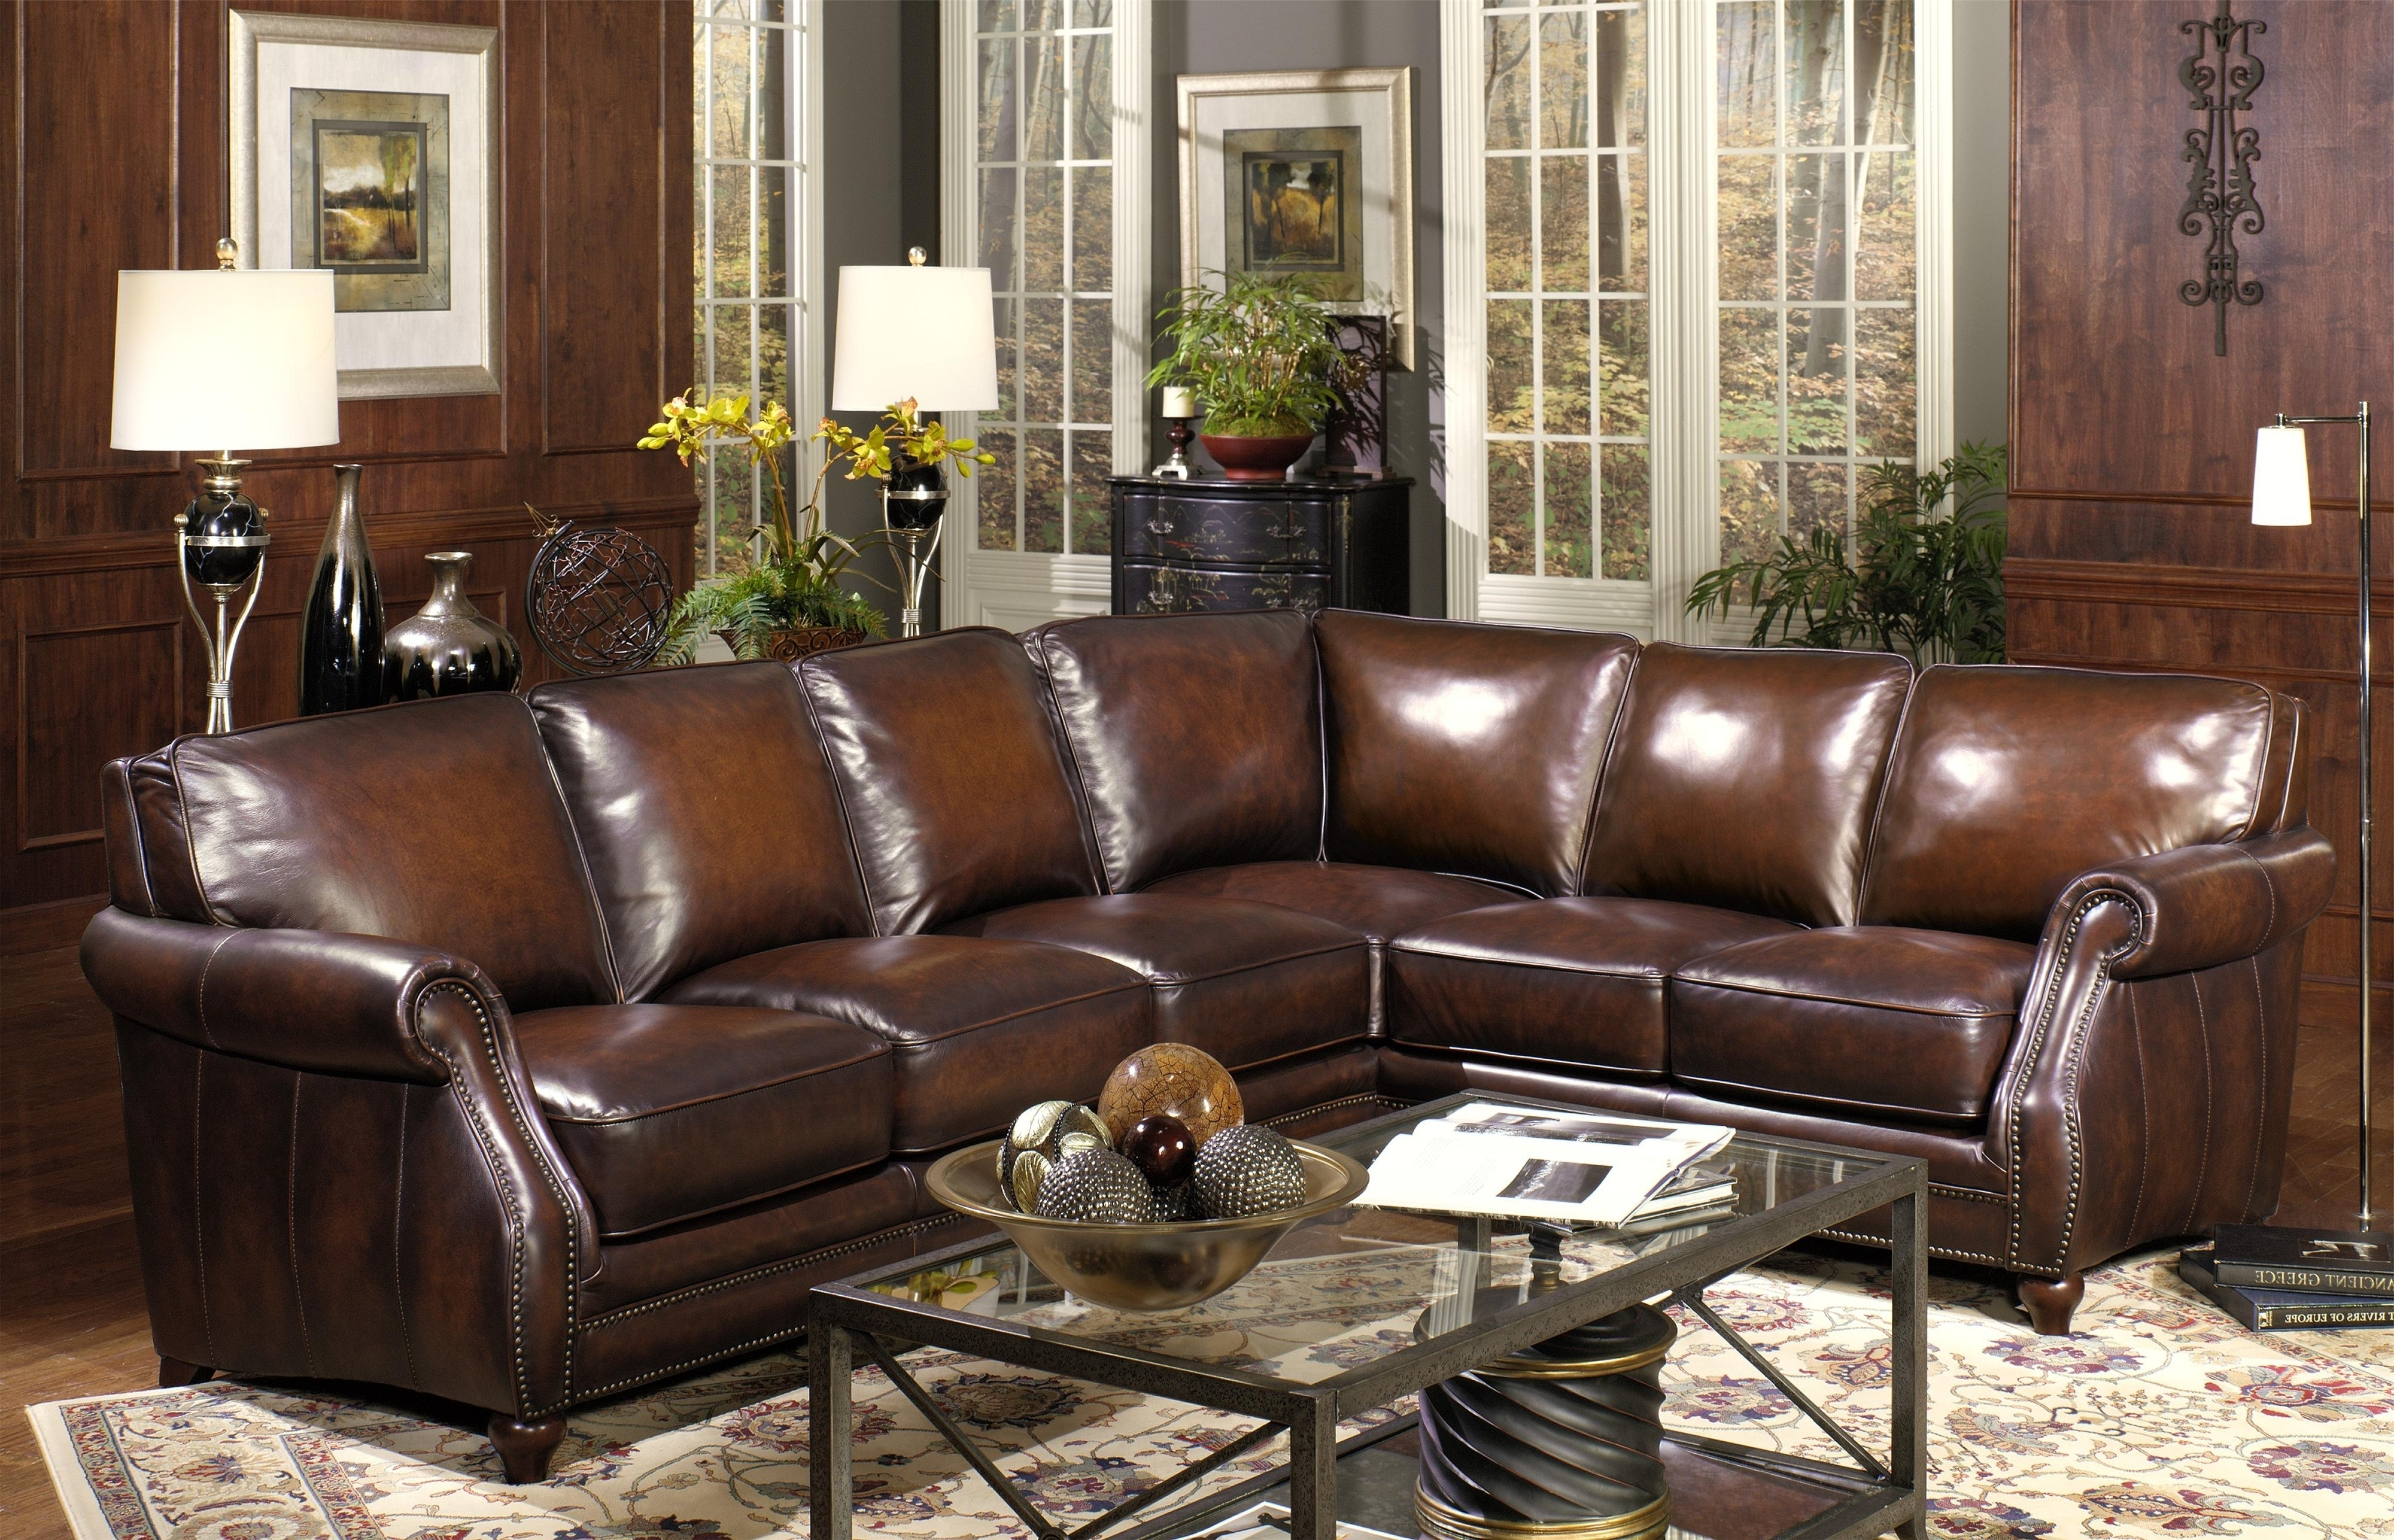 2018 Sectional Sofas From Europe Pertaining To Elegant Leather Sectional Sofas San Diego 35 On Gray Modular In (View 2 of 15)